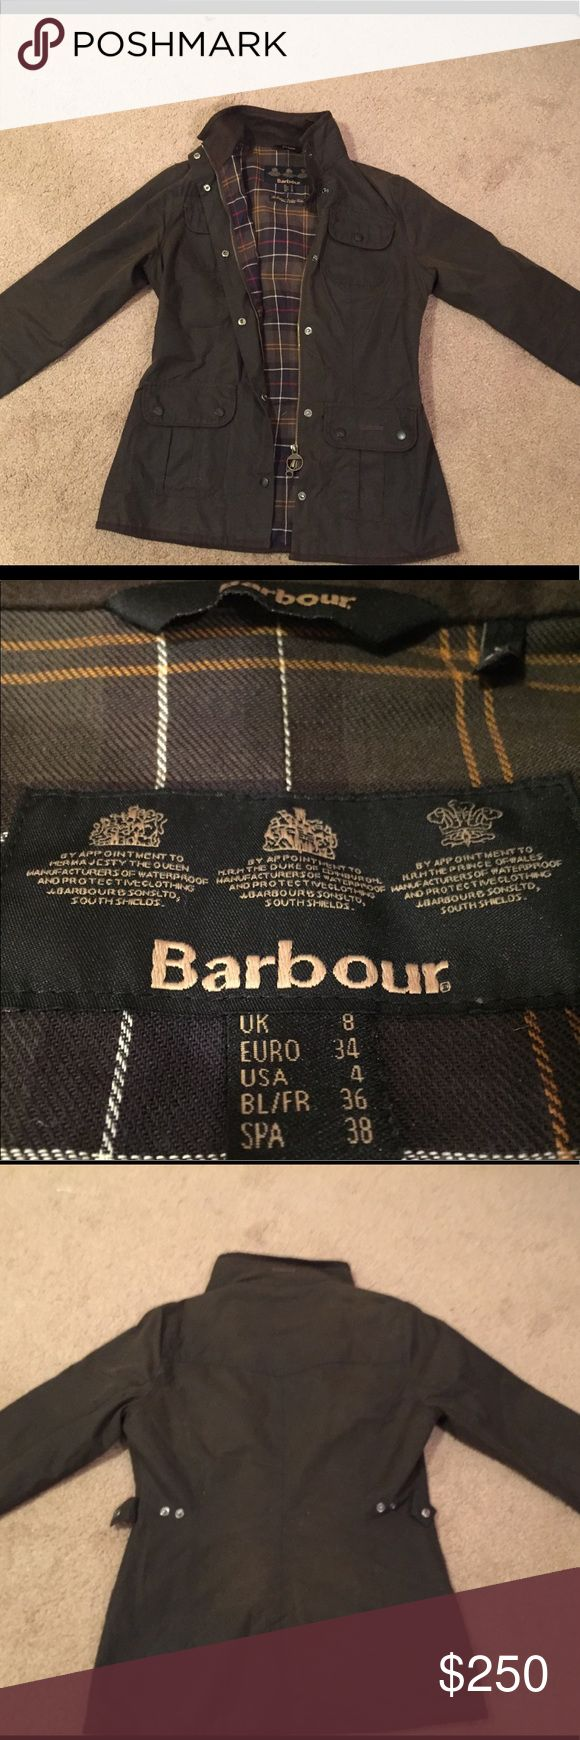 Barbour Waxed Cotton Utility Jacket 4US/8UK Worn only a handful of times. Relatively new, great condition! Barbour Jackets & Coats Utility Jackets